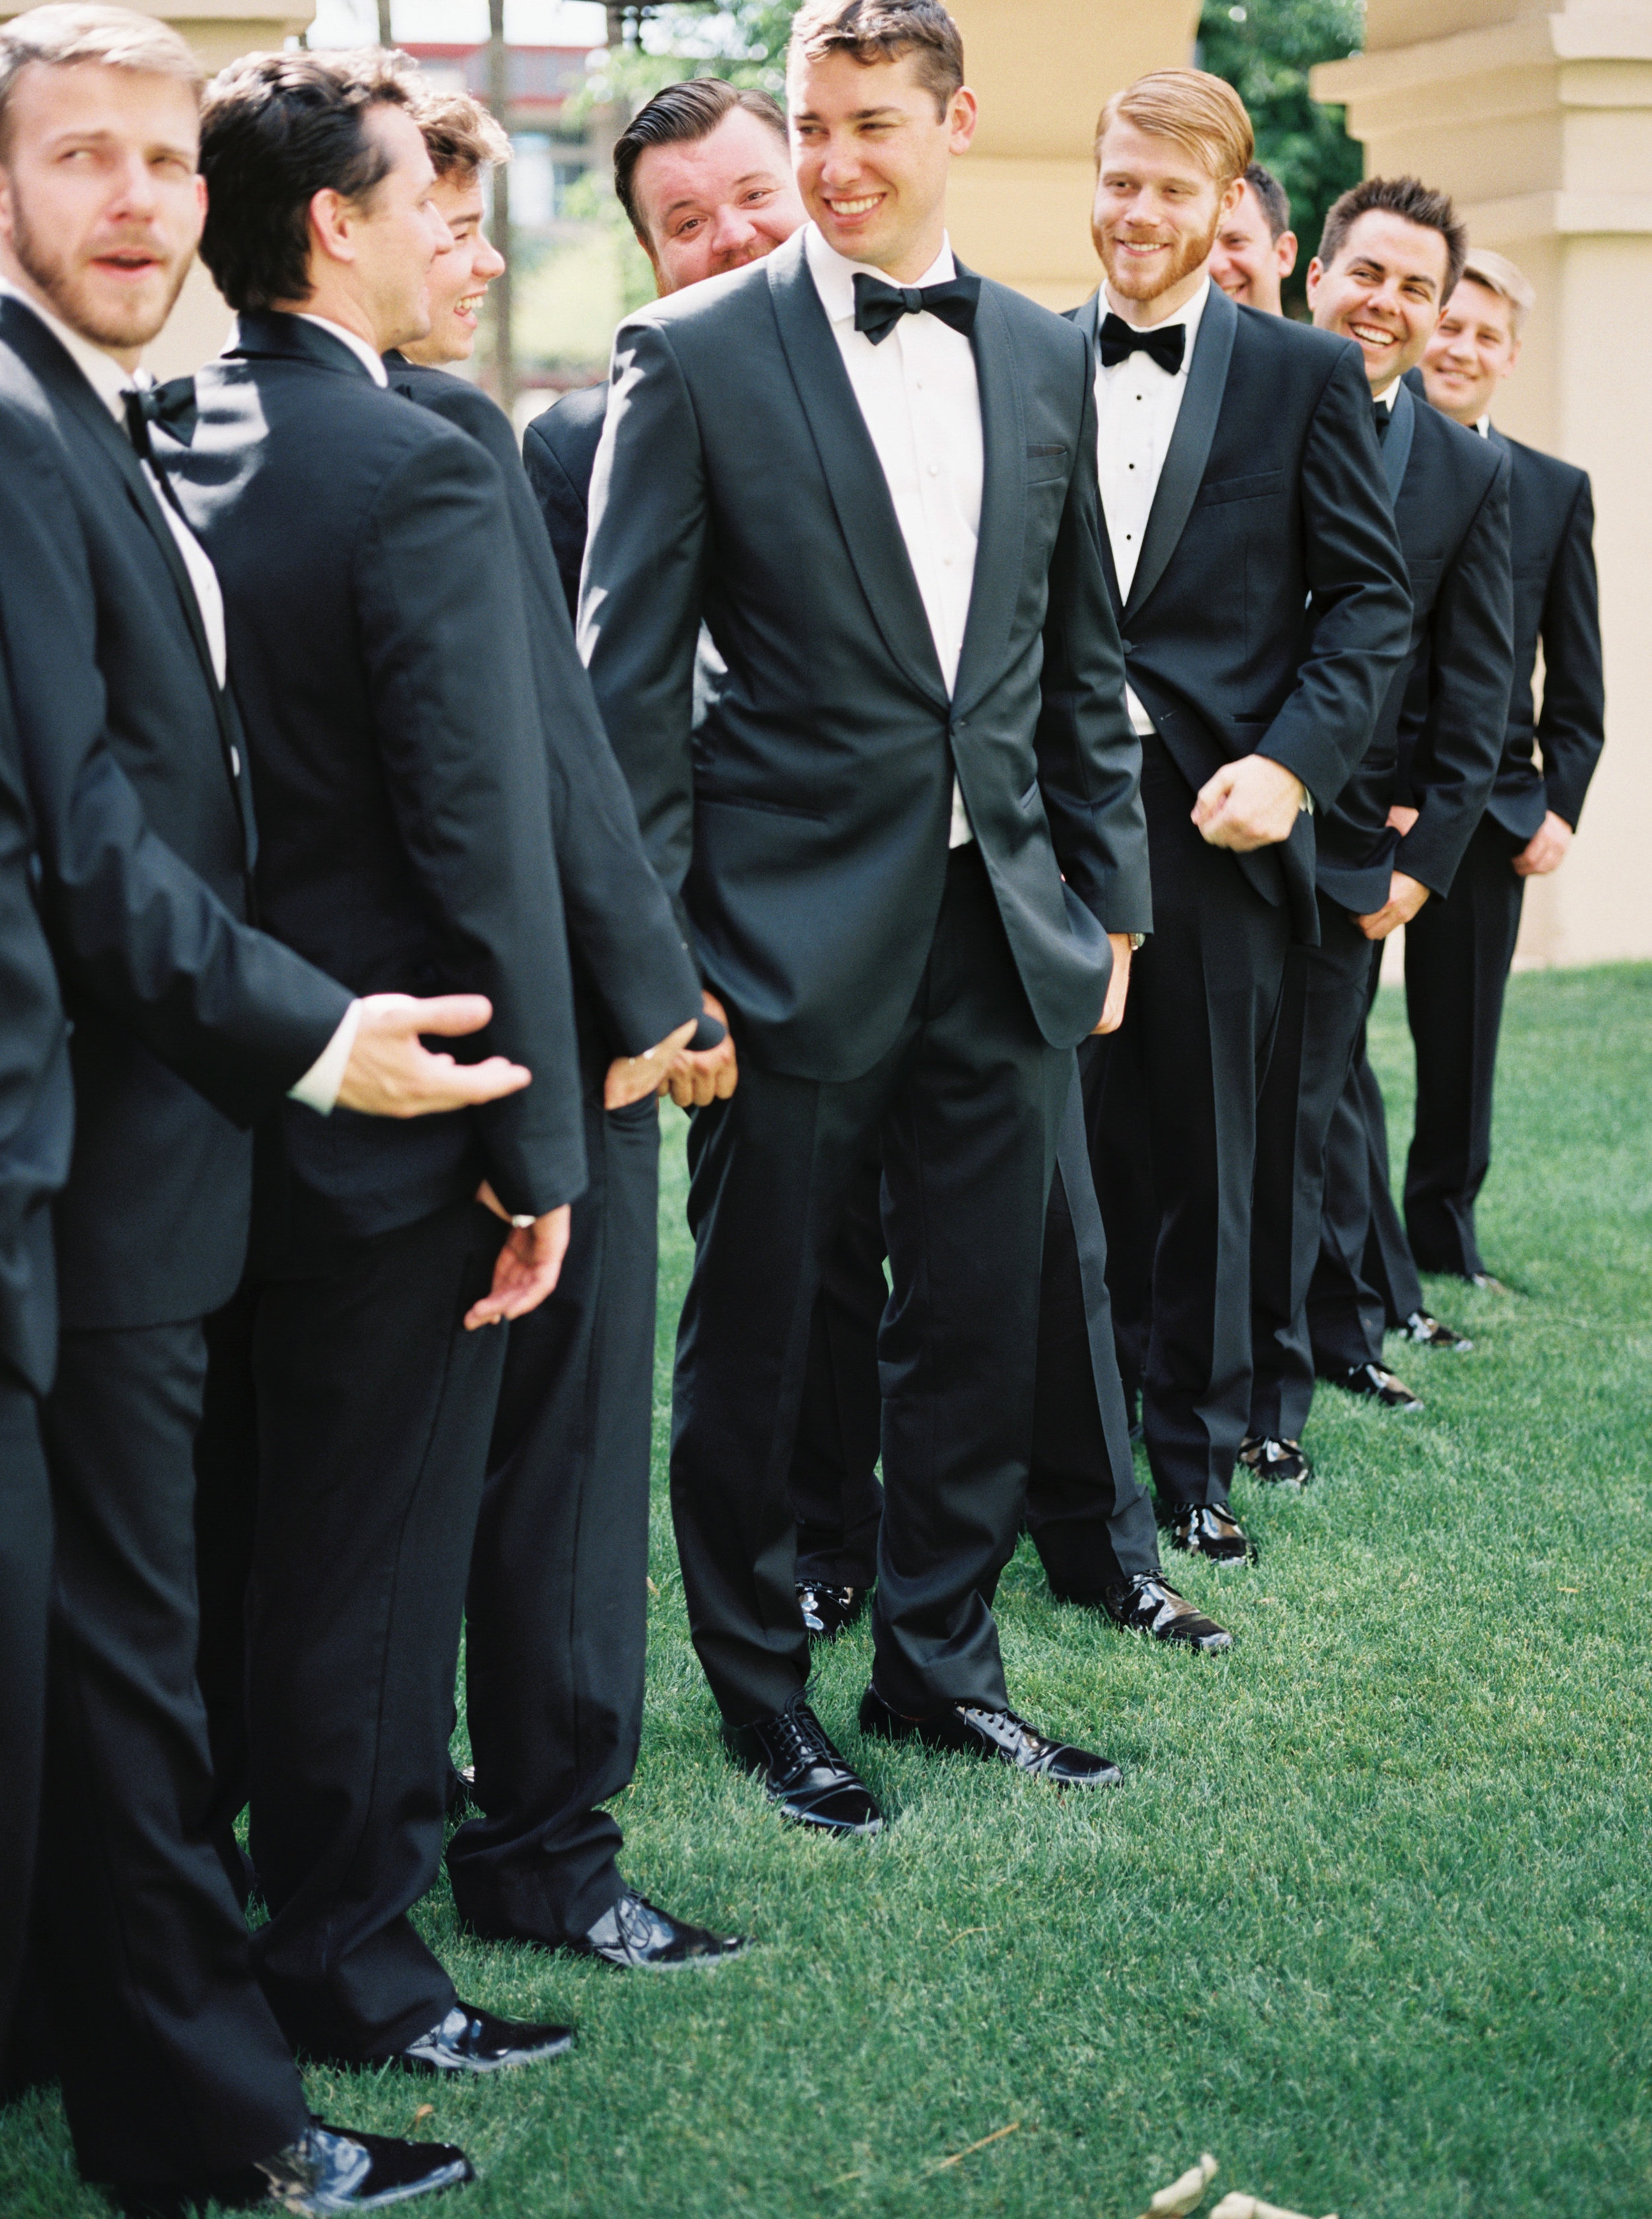 groom details, groomsmen details, bridal party photos, groom tux, groomsmen tux, groom formal attire, groomsmen formal attire